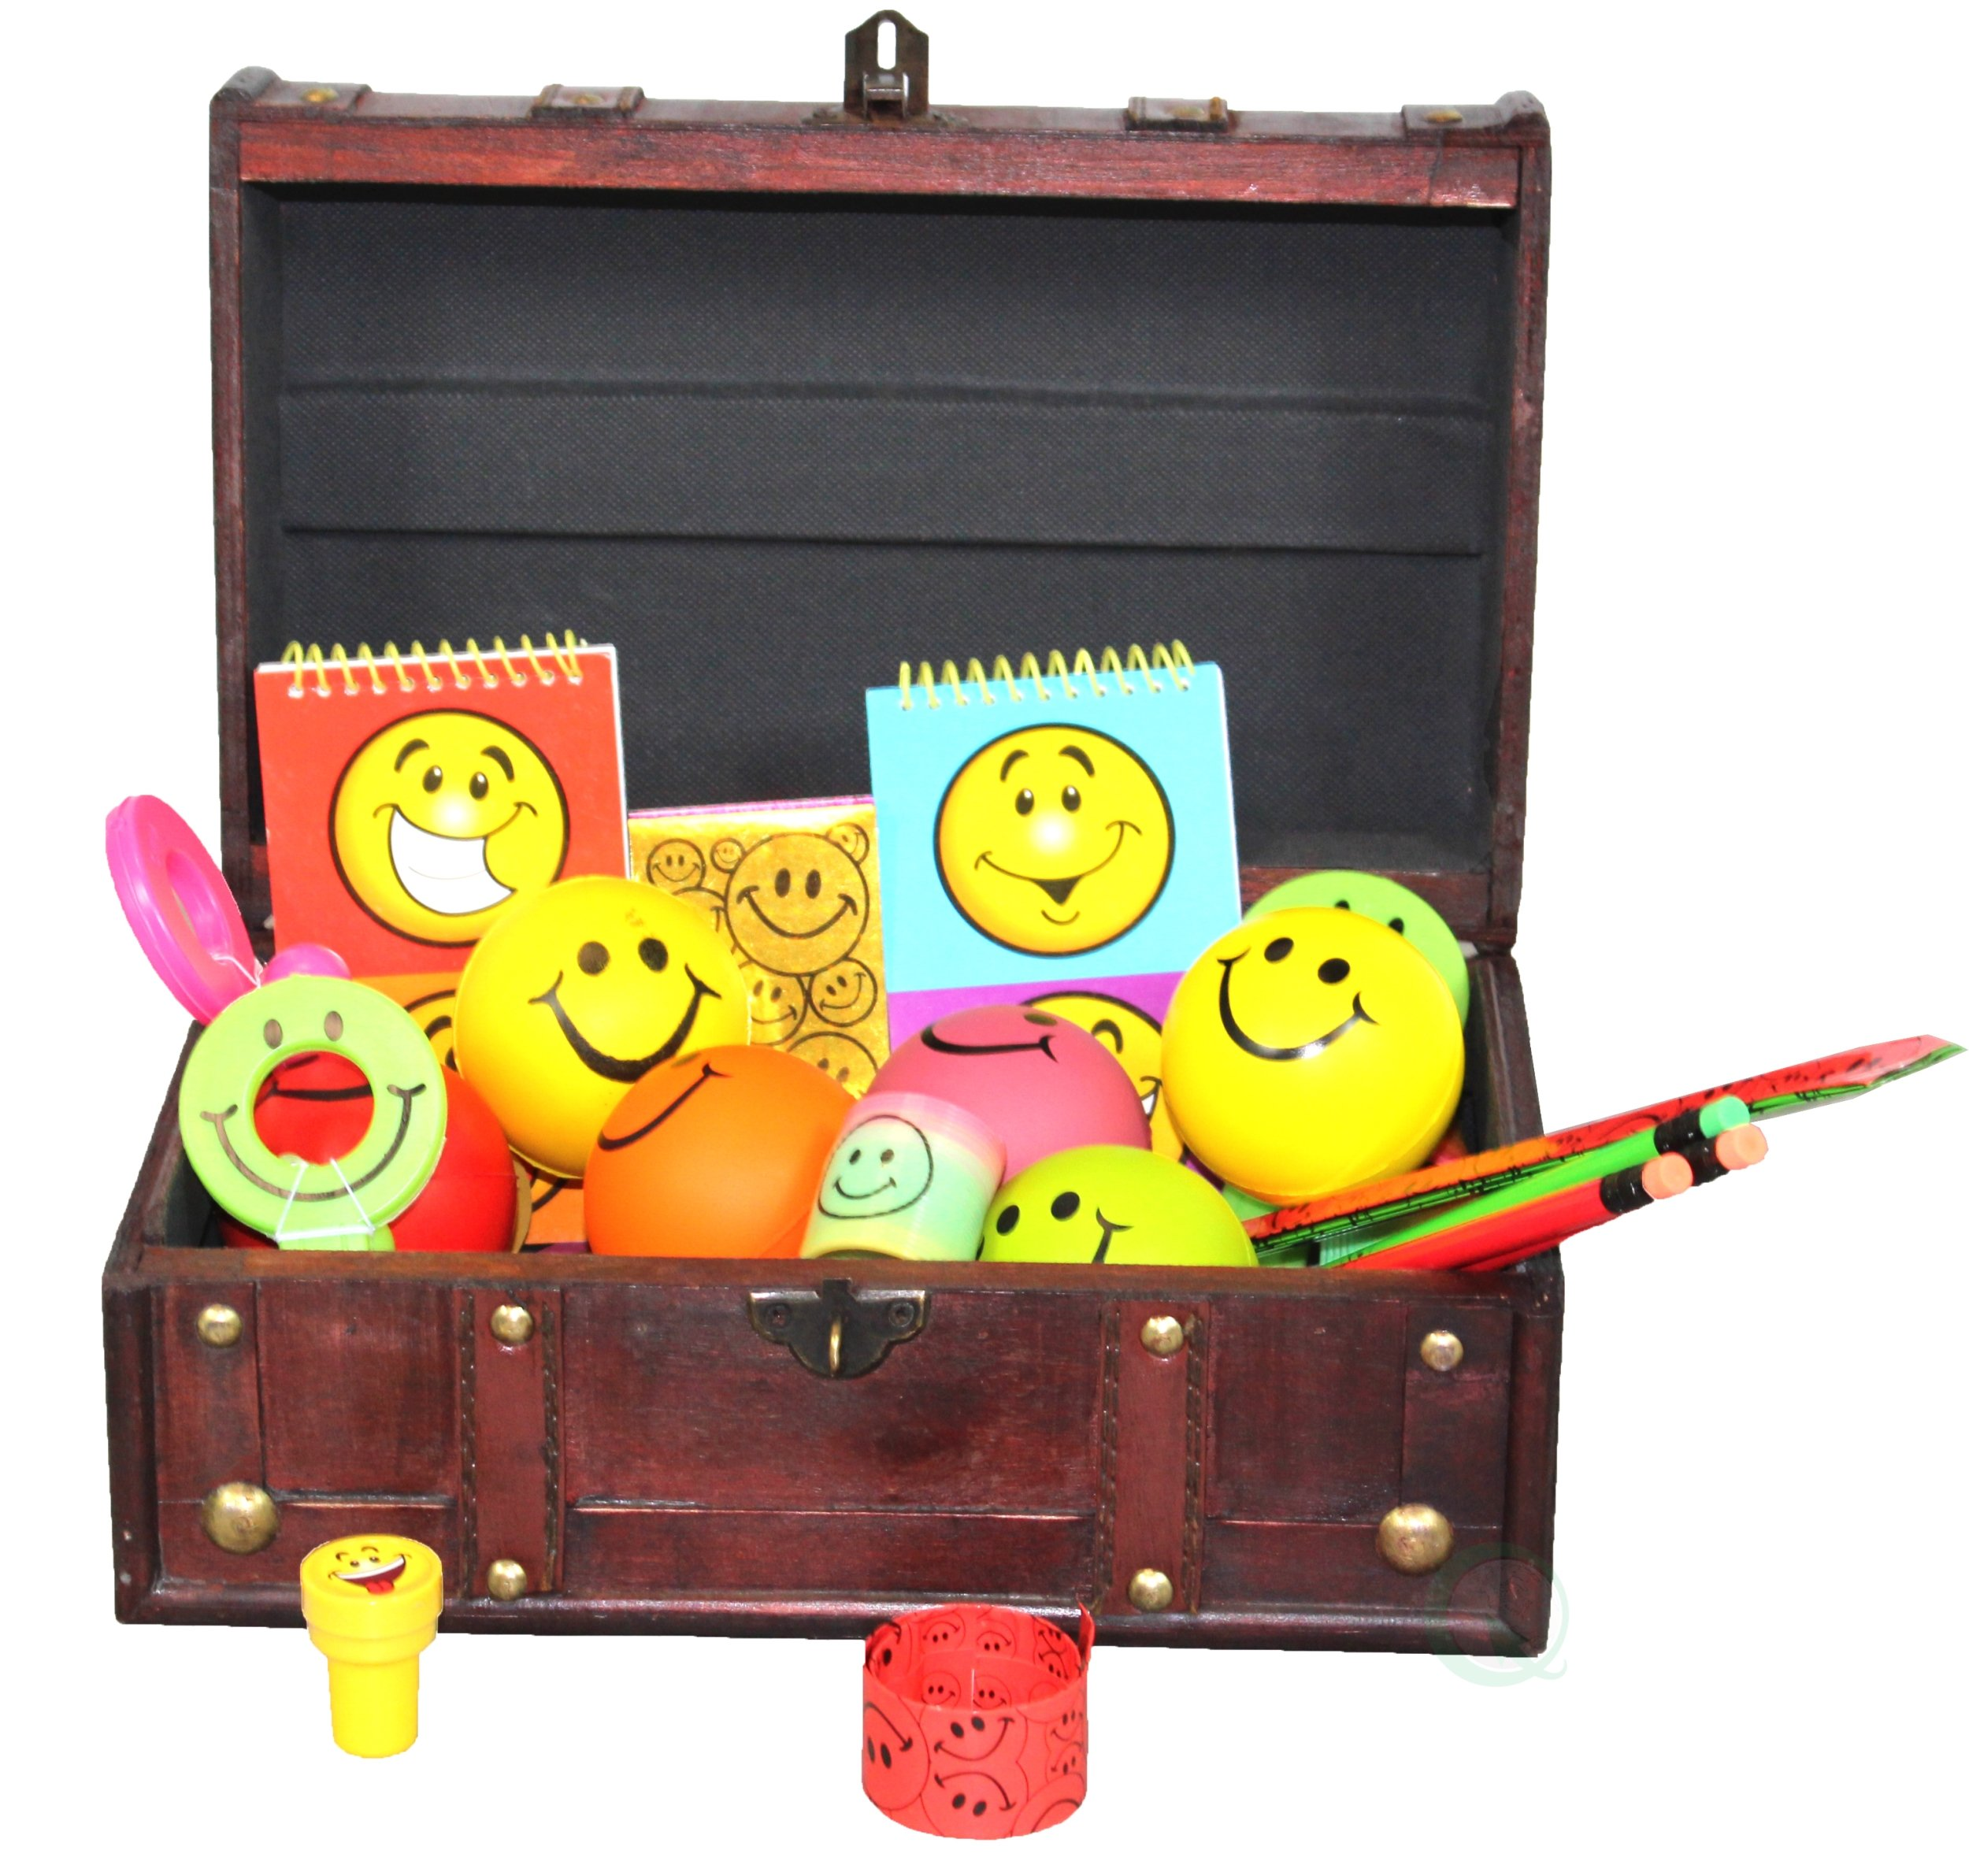 Pirate Treasure Chest Full of Toys (50 Toy Pcs) by Decorative Gifts by Decorative Gifts